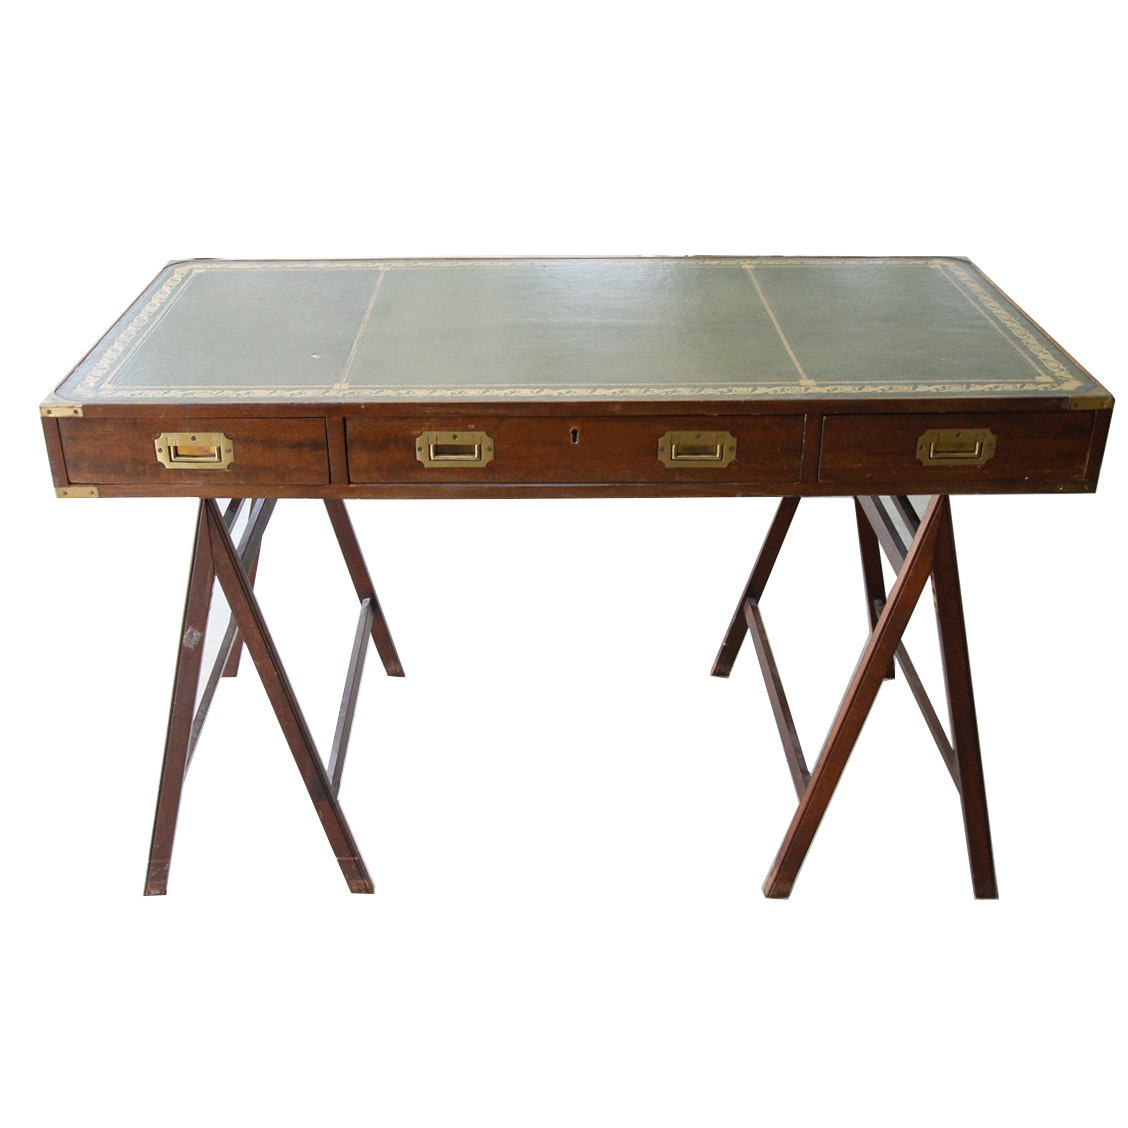 Early 20th Century Leather Top Wooden Desk